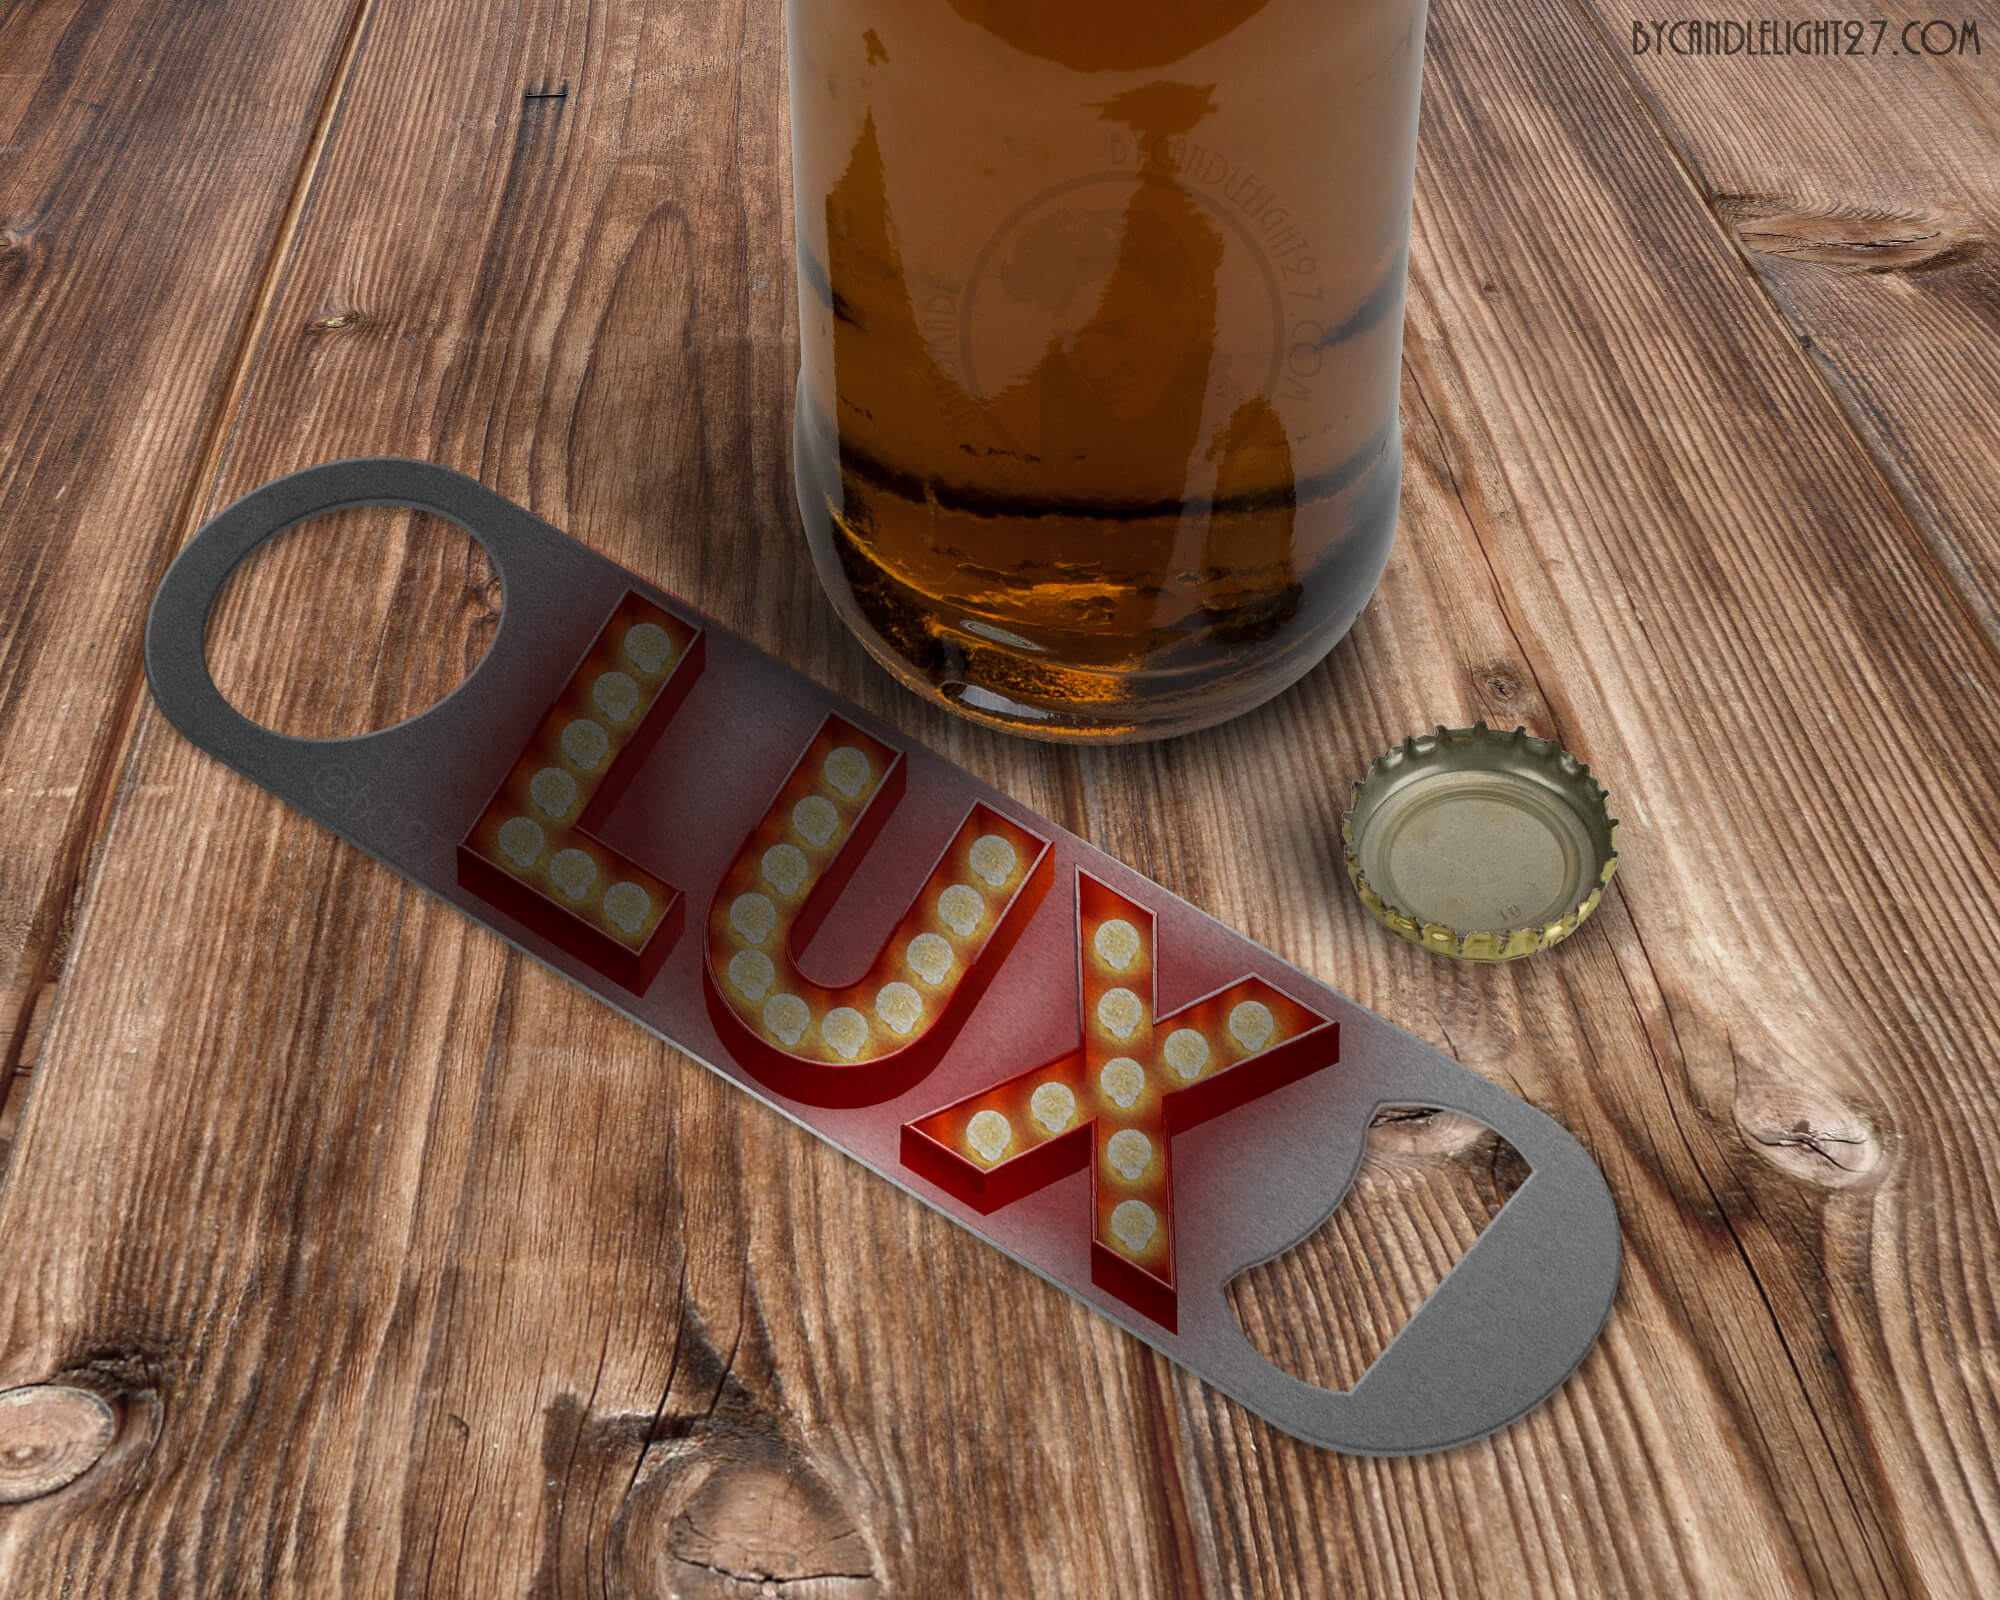 Lux Bar - Lucifer Bar Blade Bottle Opener - ByCandlelight27